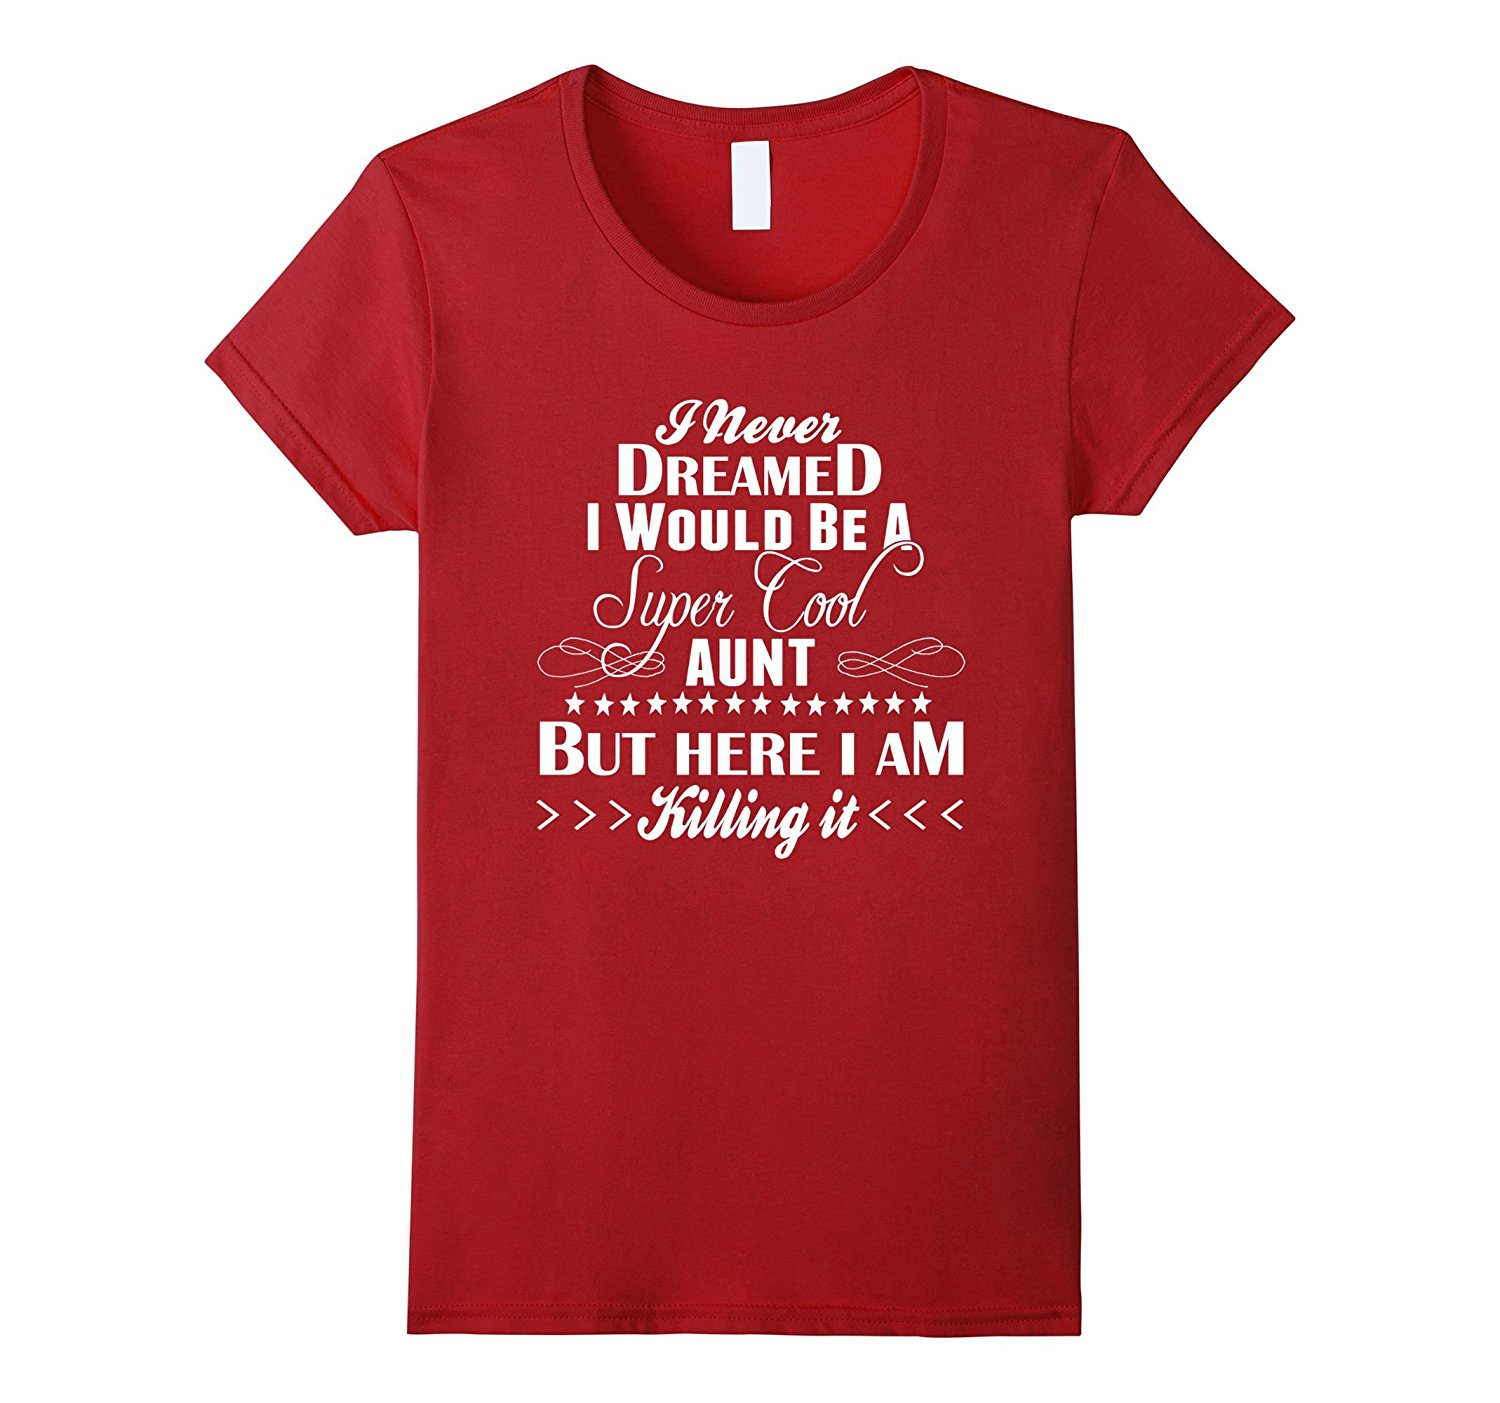 Gildan Womens Super Cool Aunt T-Shirt Coolest Auntie Around Tee Branded Lady Casual Tees Crew Neck T Shirts